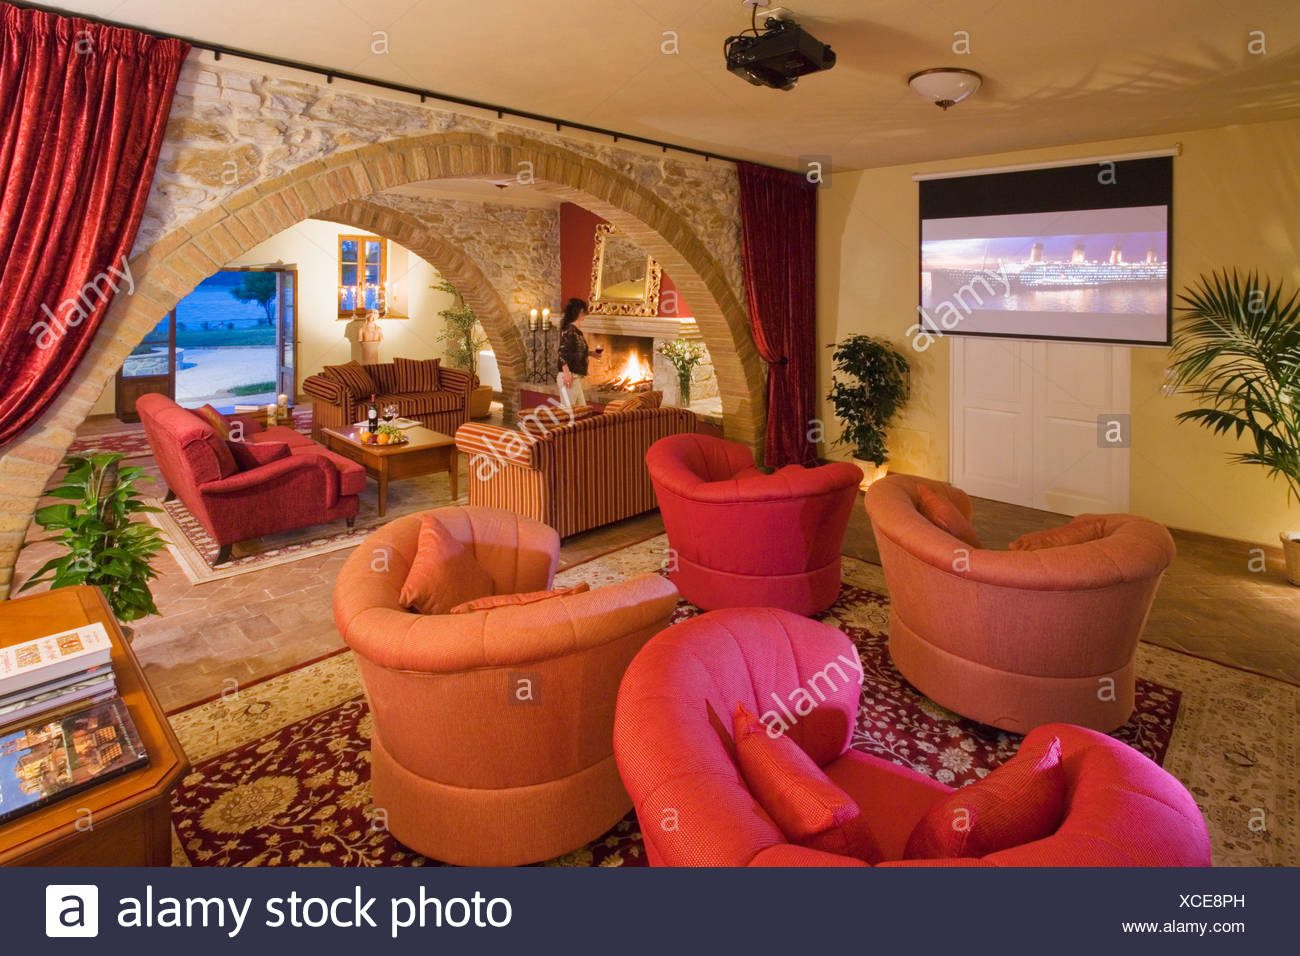 Small cinema screen on wall of Spanish living room with red and ...